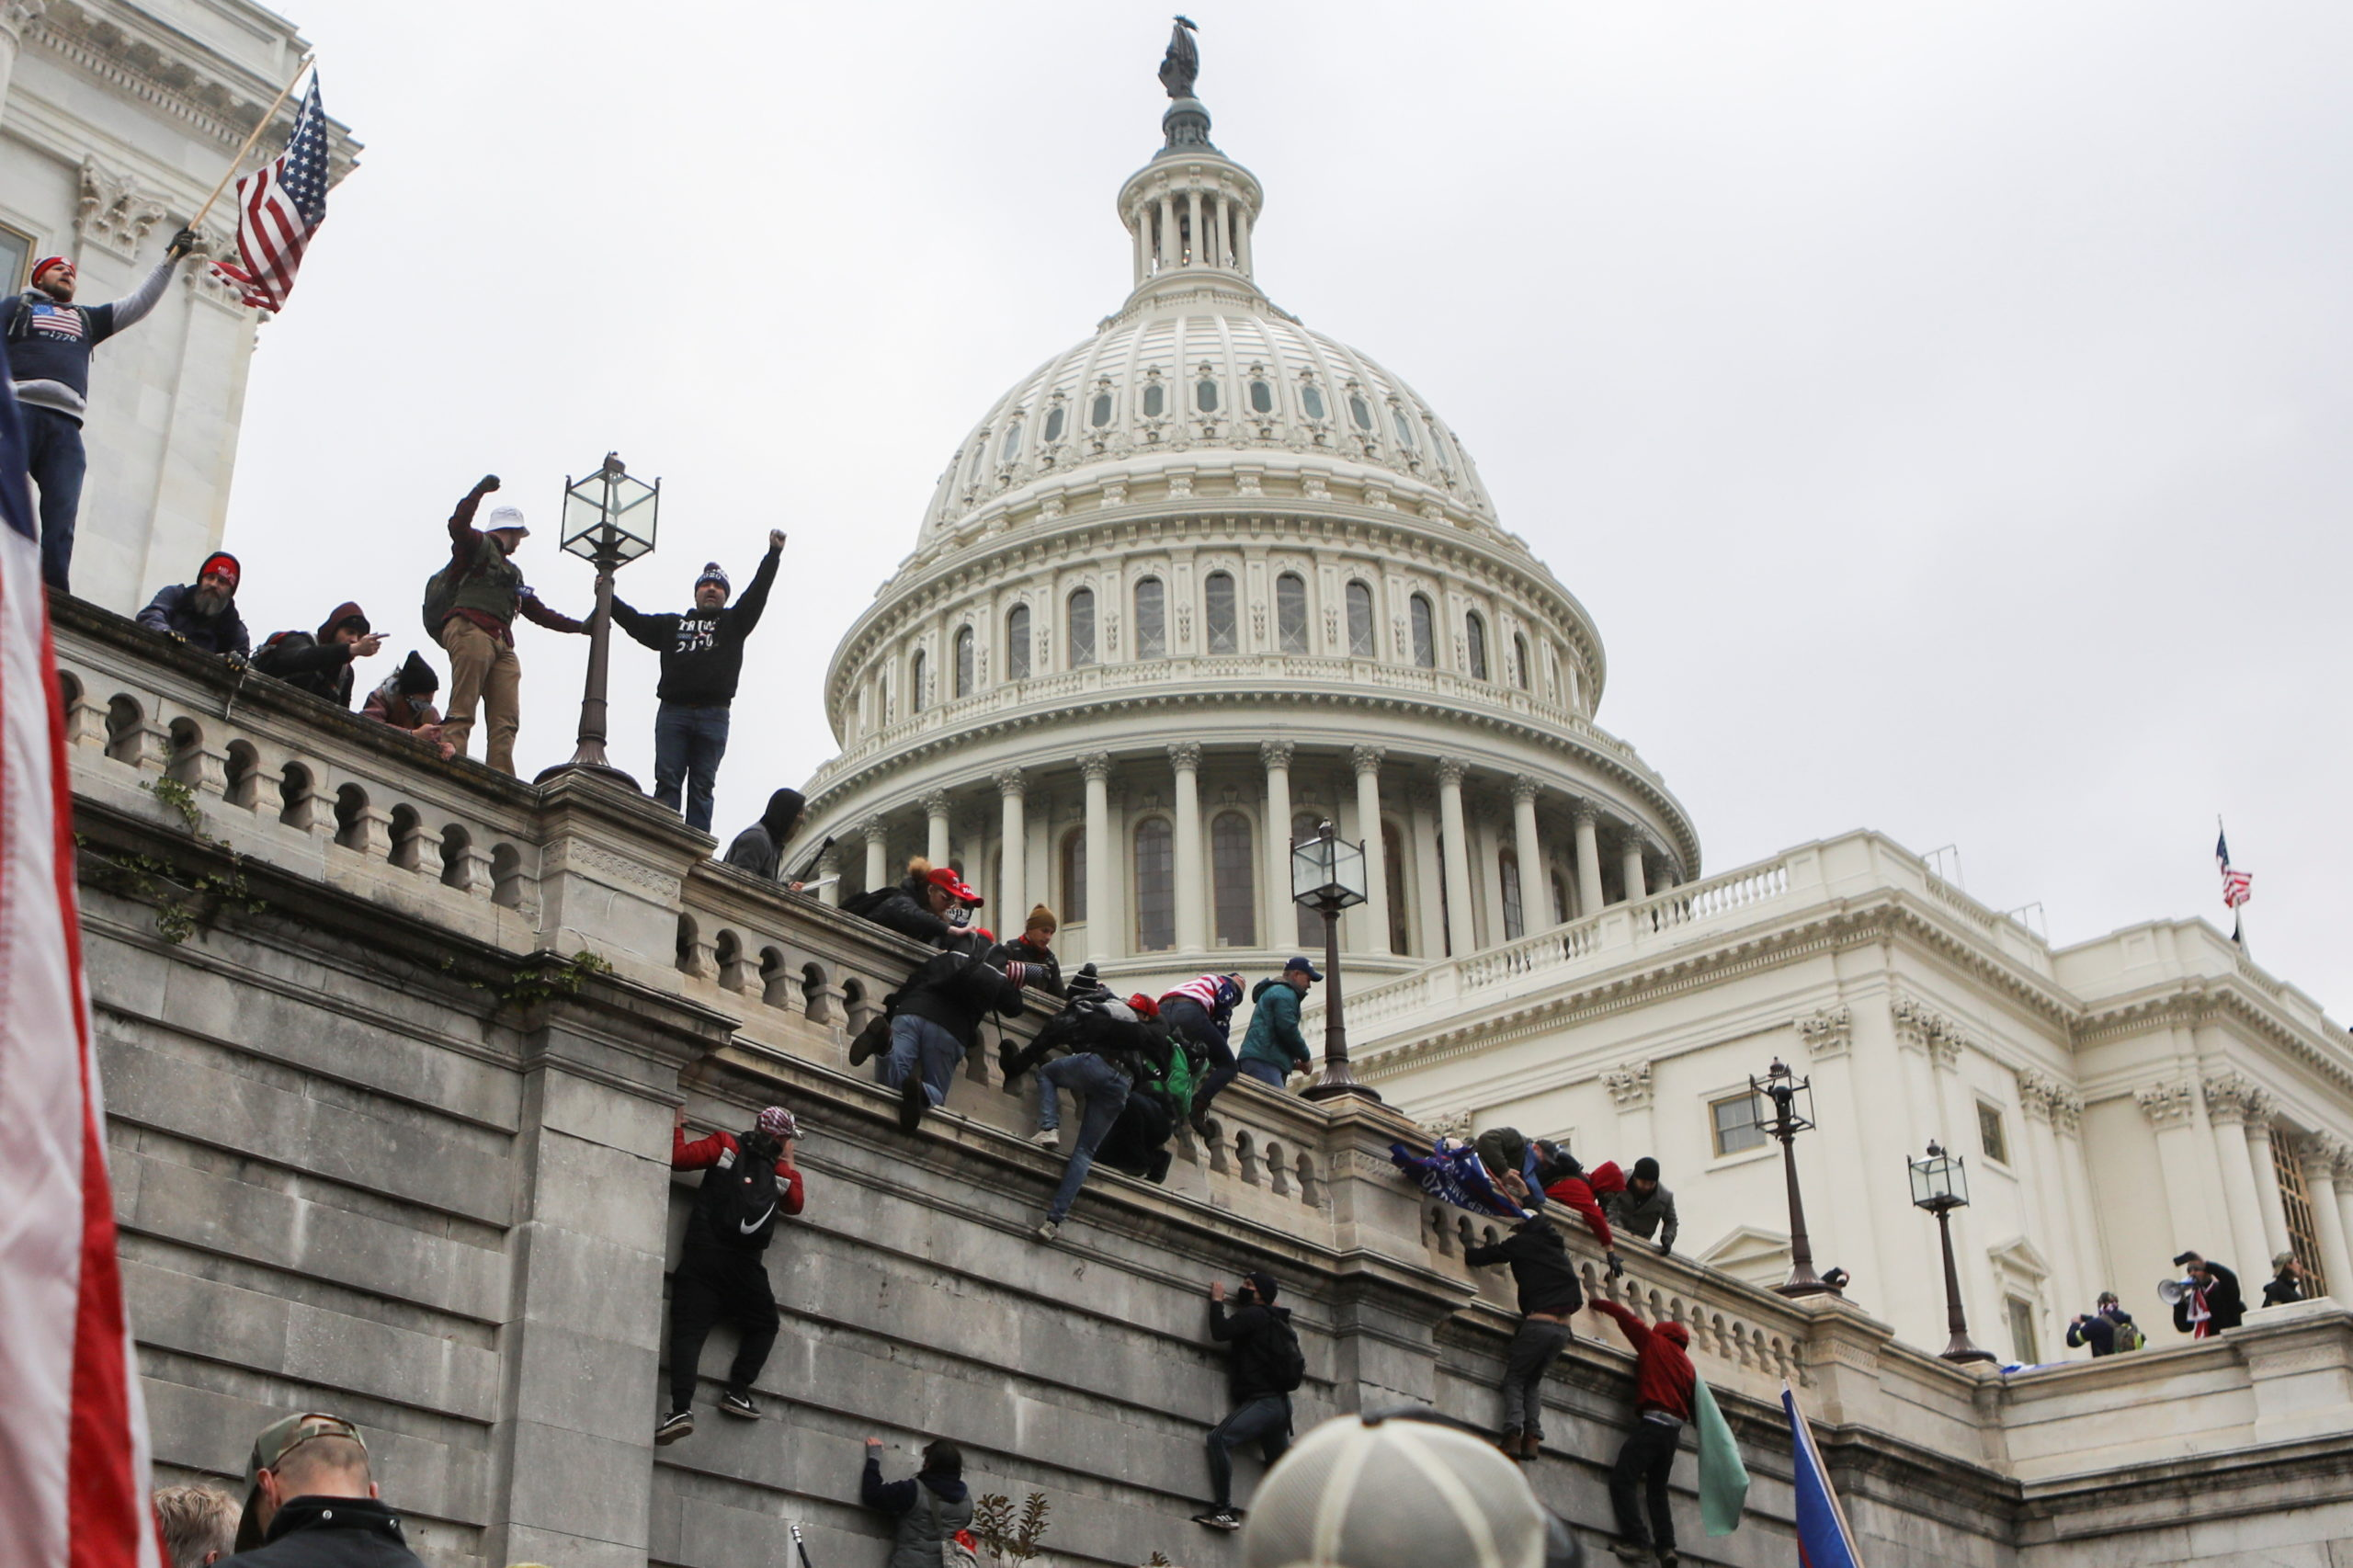 World stunned by violence in U.S. Capitol, attempts to overturn election | Inquirer News